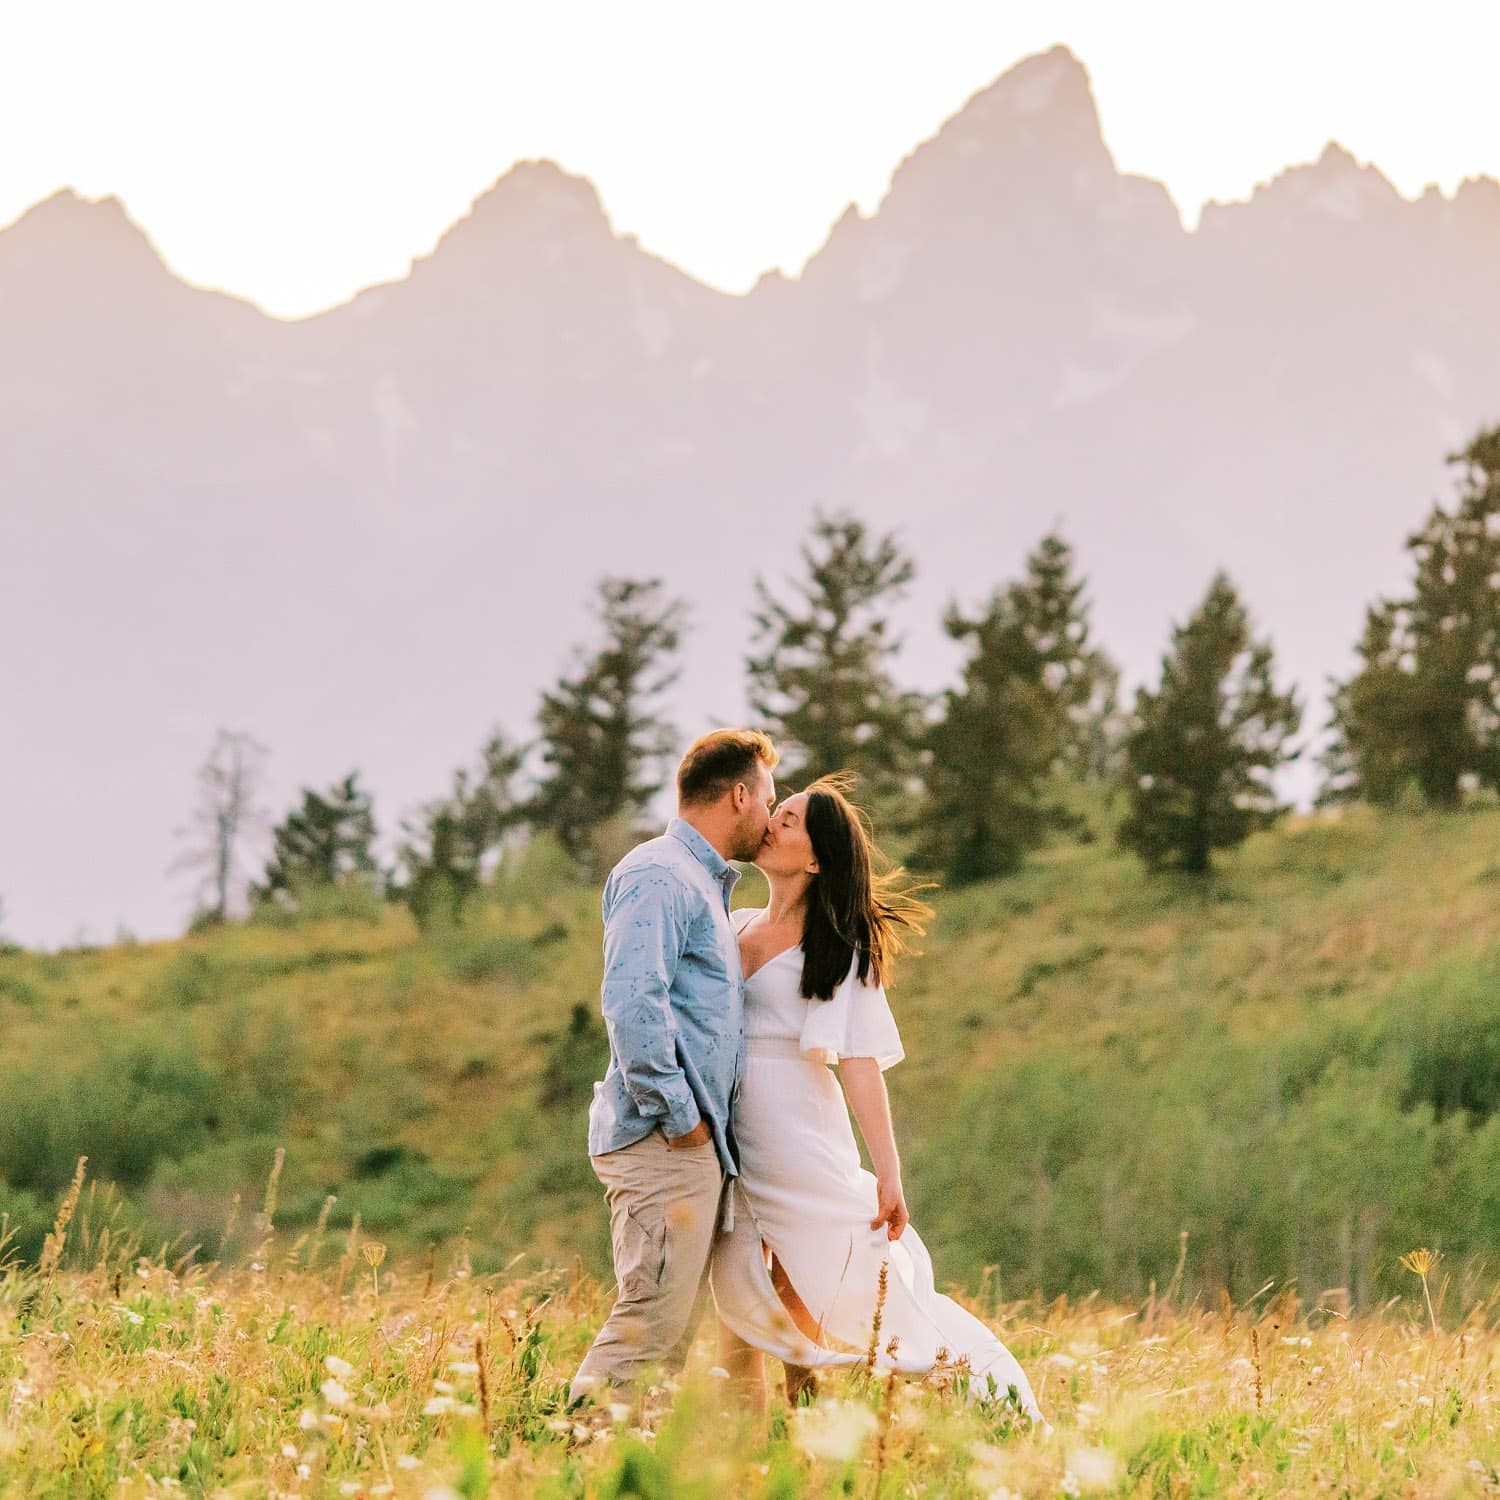 Hiking Elopement in Wyoming in the Grand Tetons